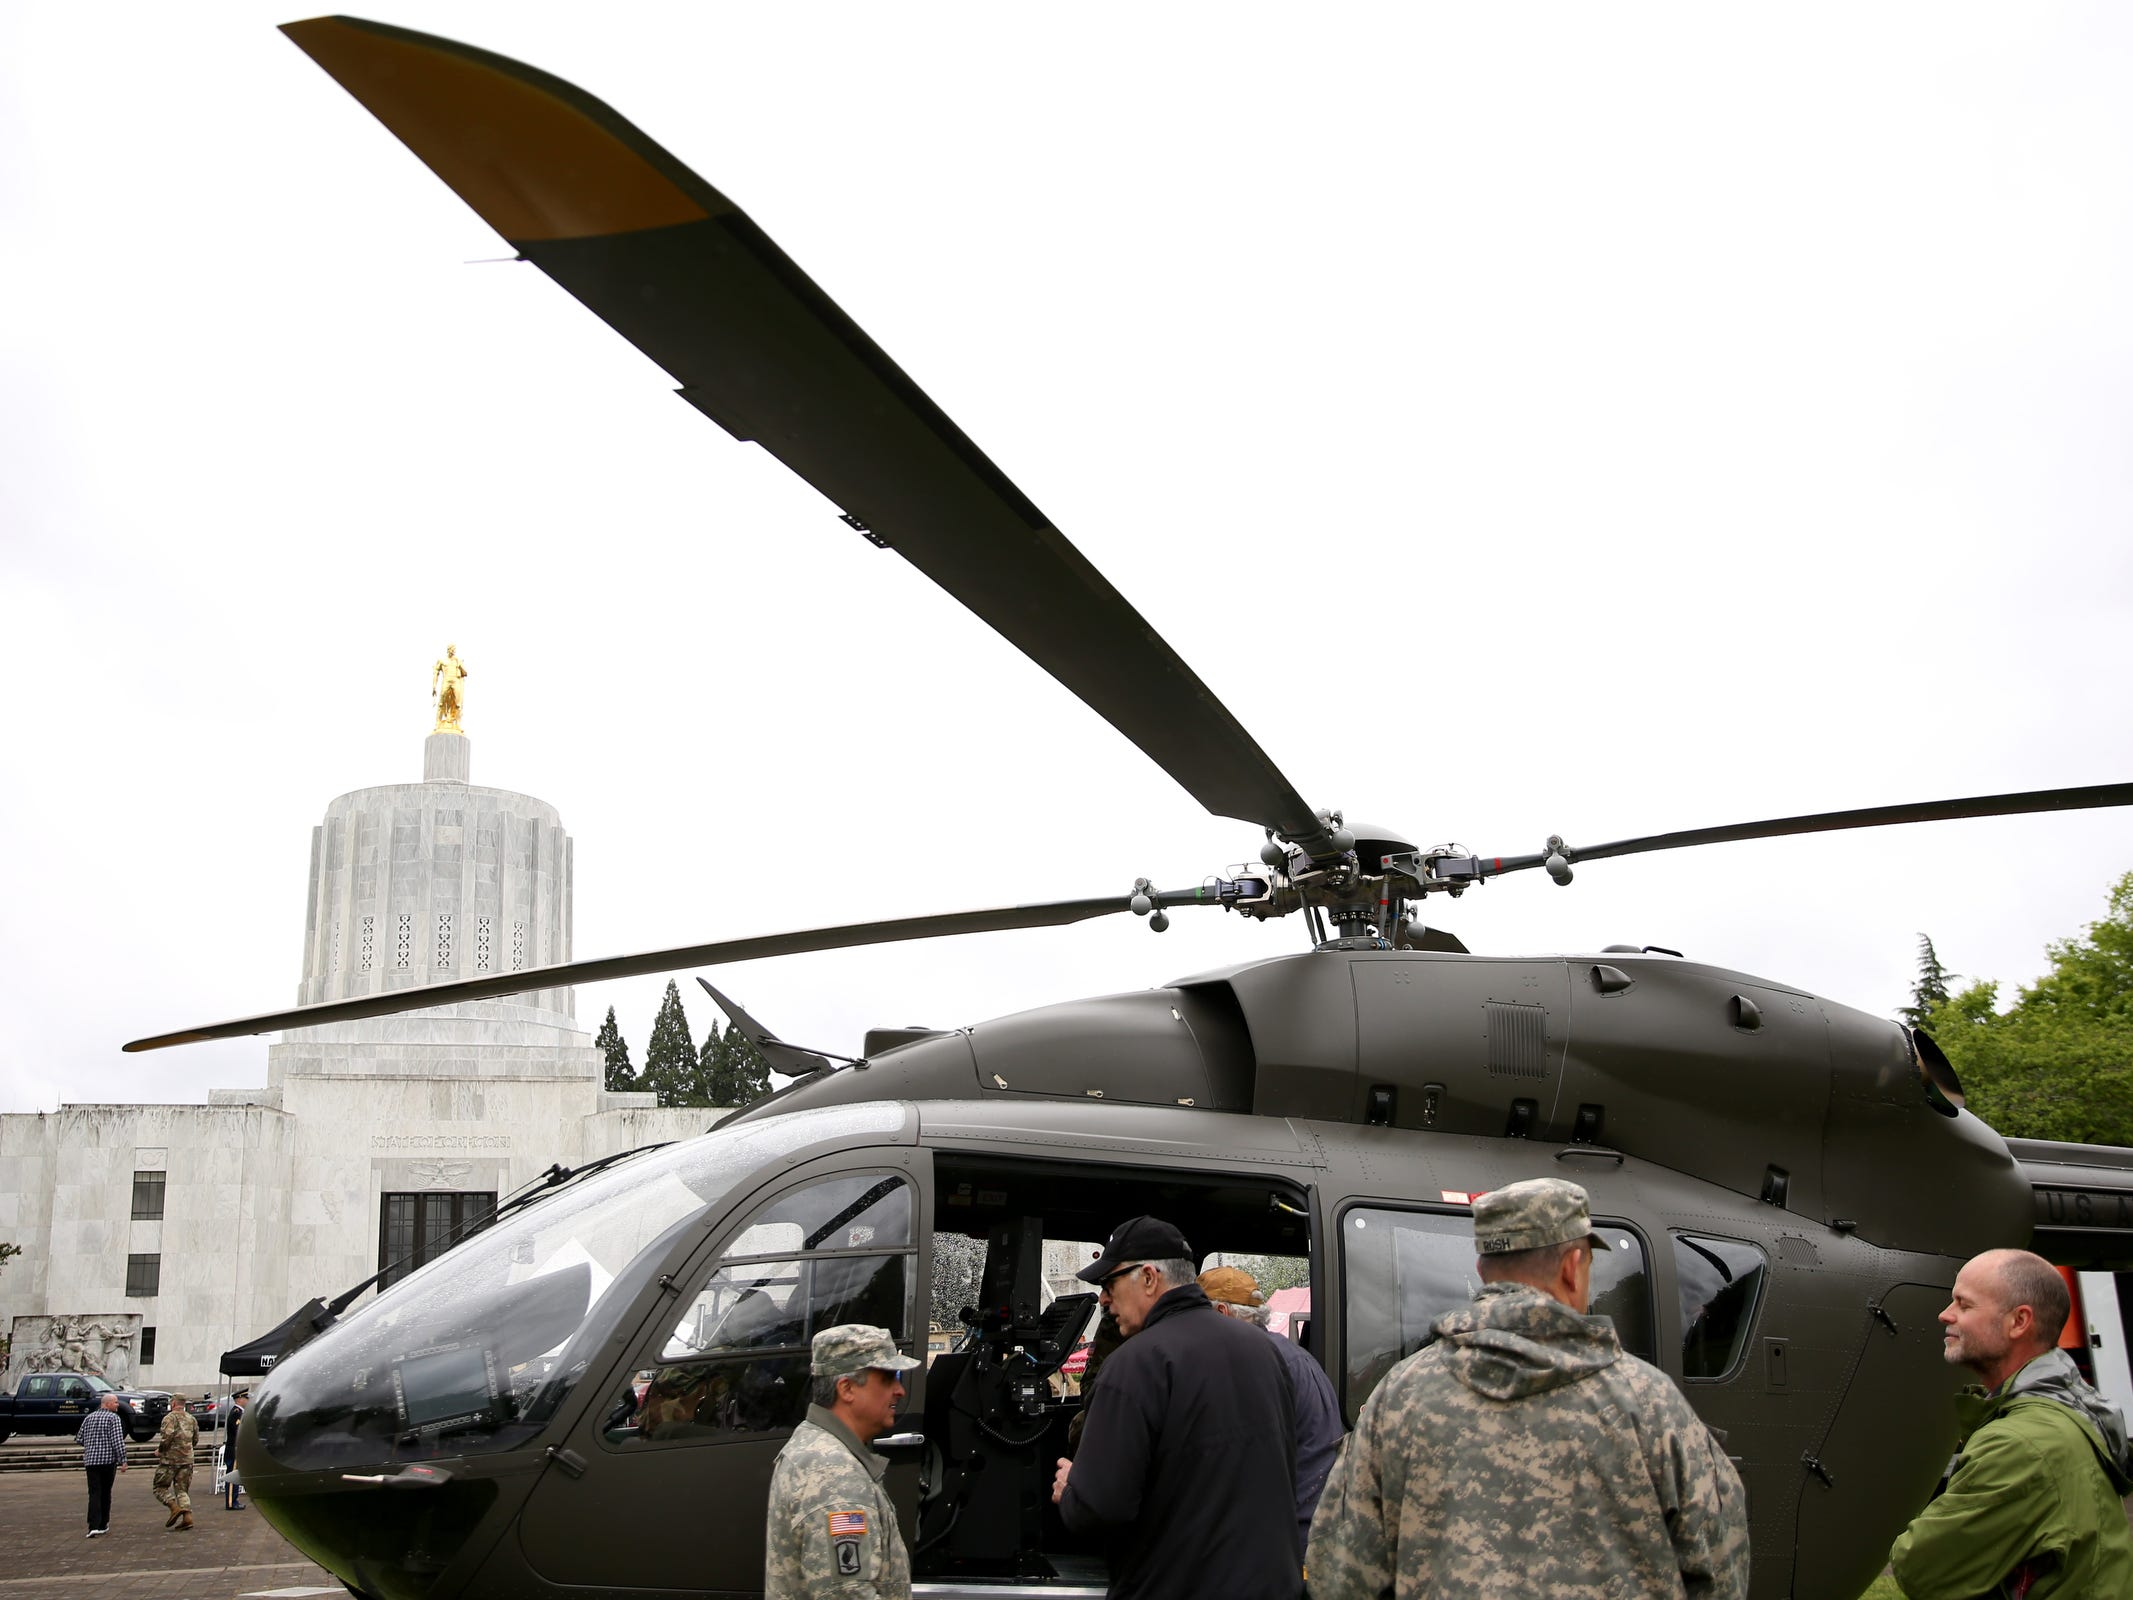 Helicopters and other military equipment filled the Capitol Mall during an Armed Forces Day celebration at the Oregon State Capitol in Salem on May 14, 2019.